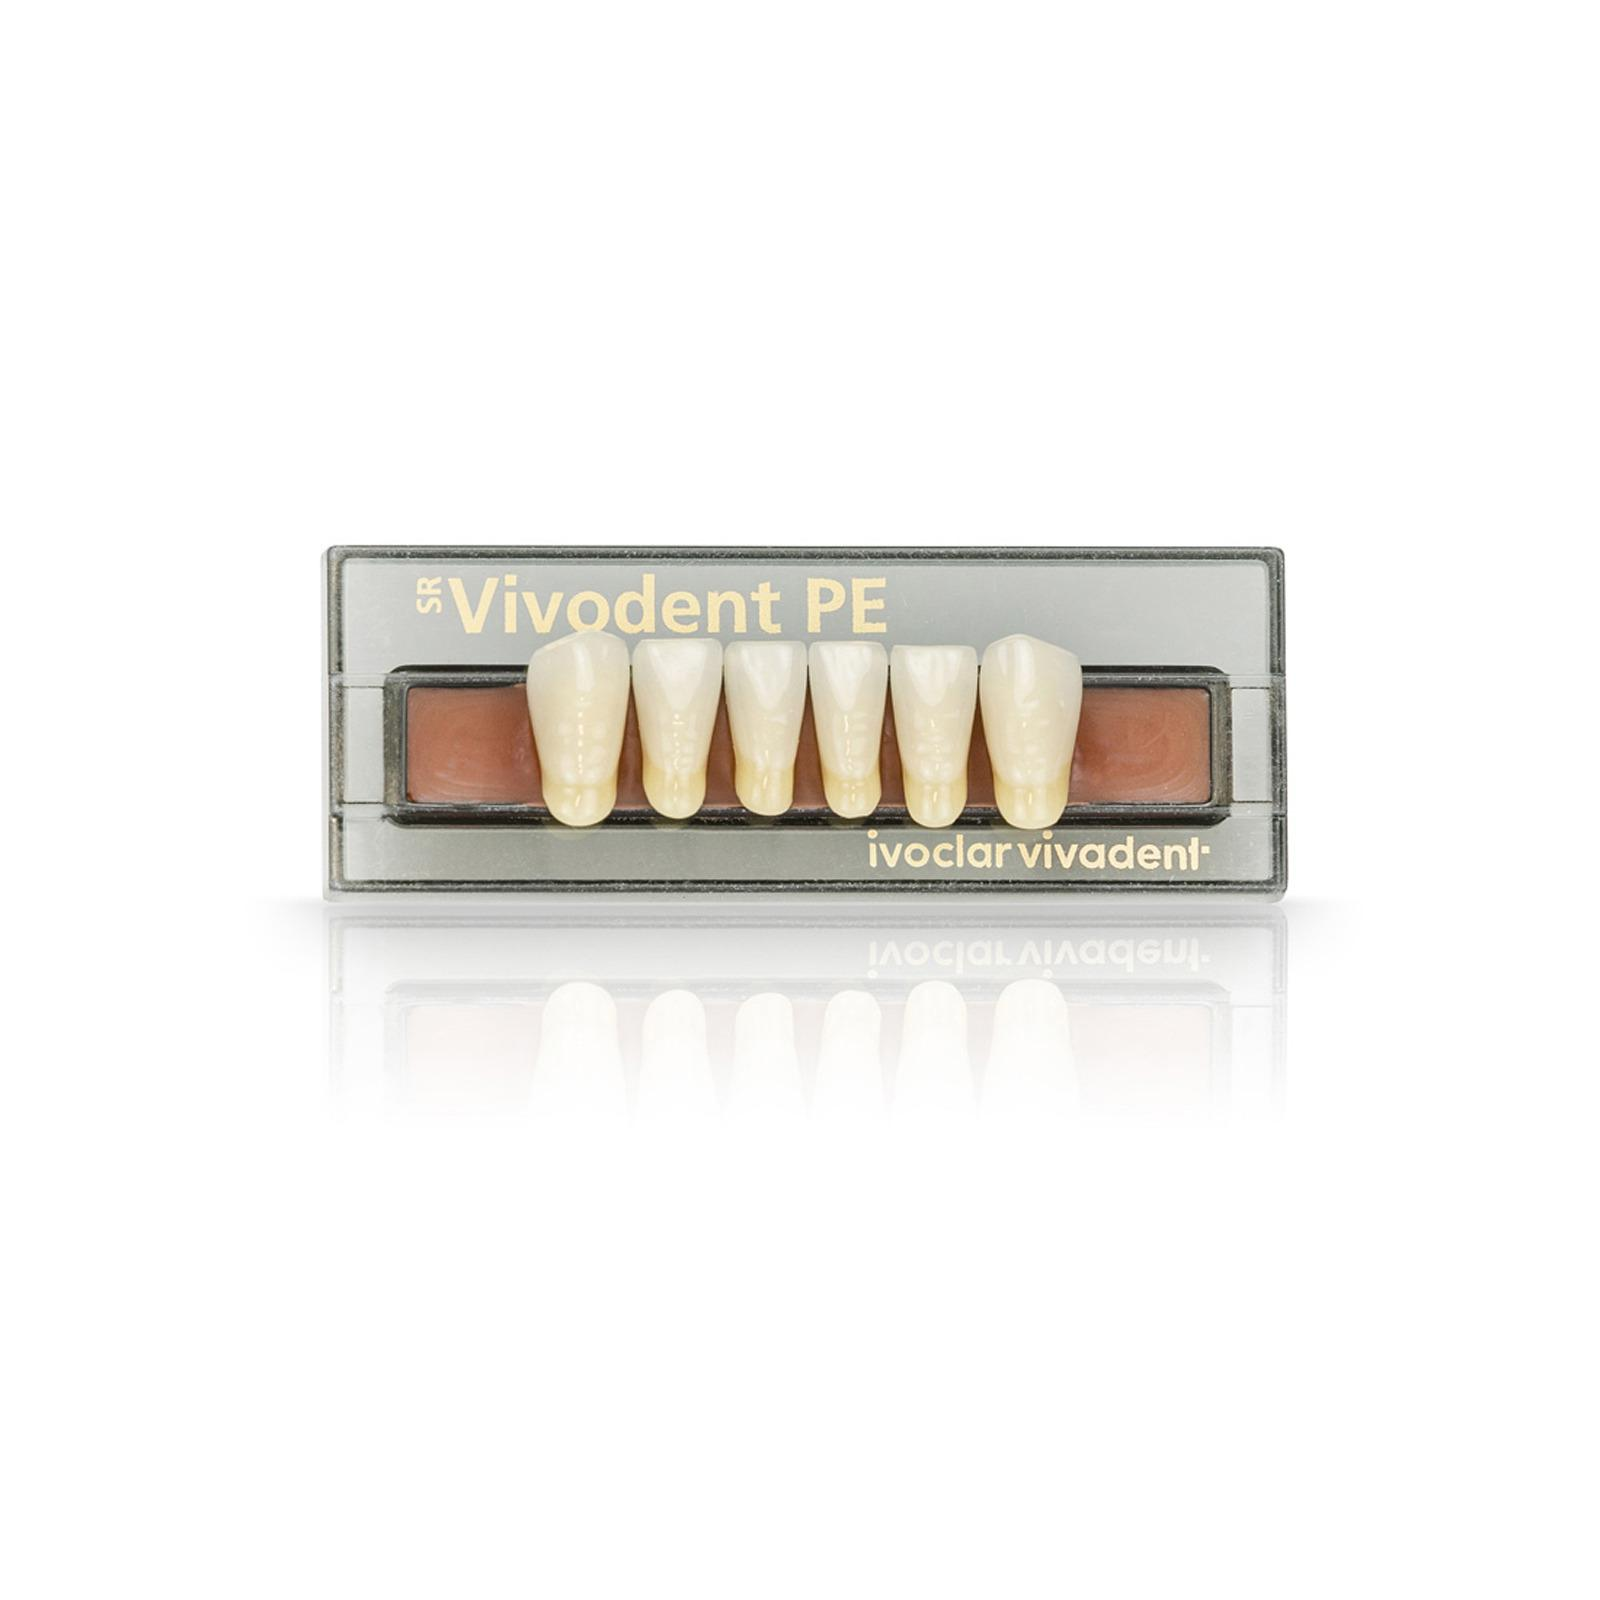 SR Vivodent PE Set of 6